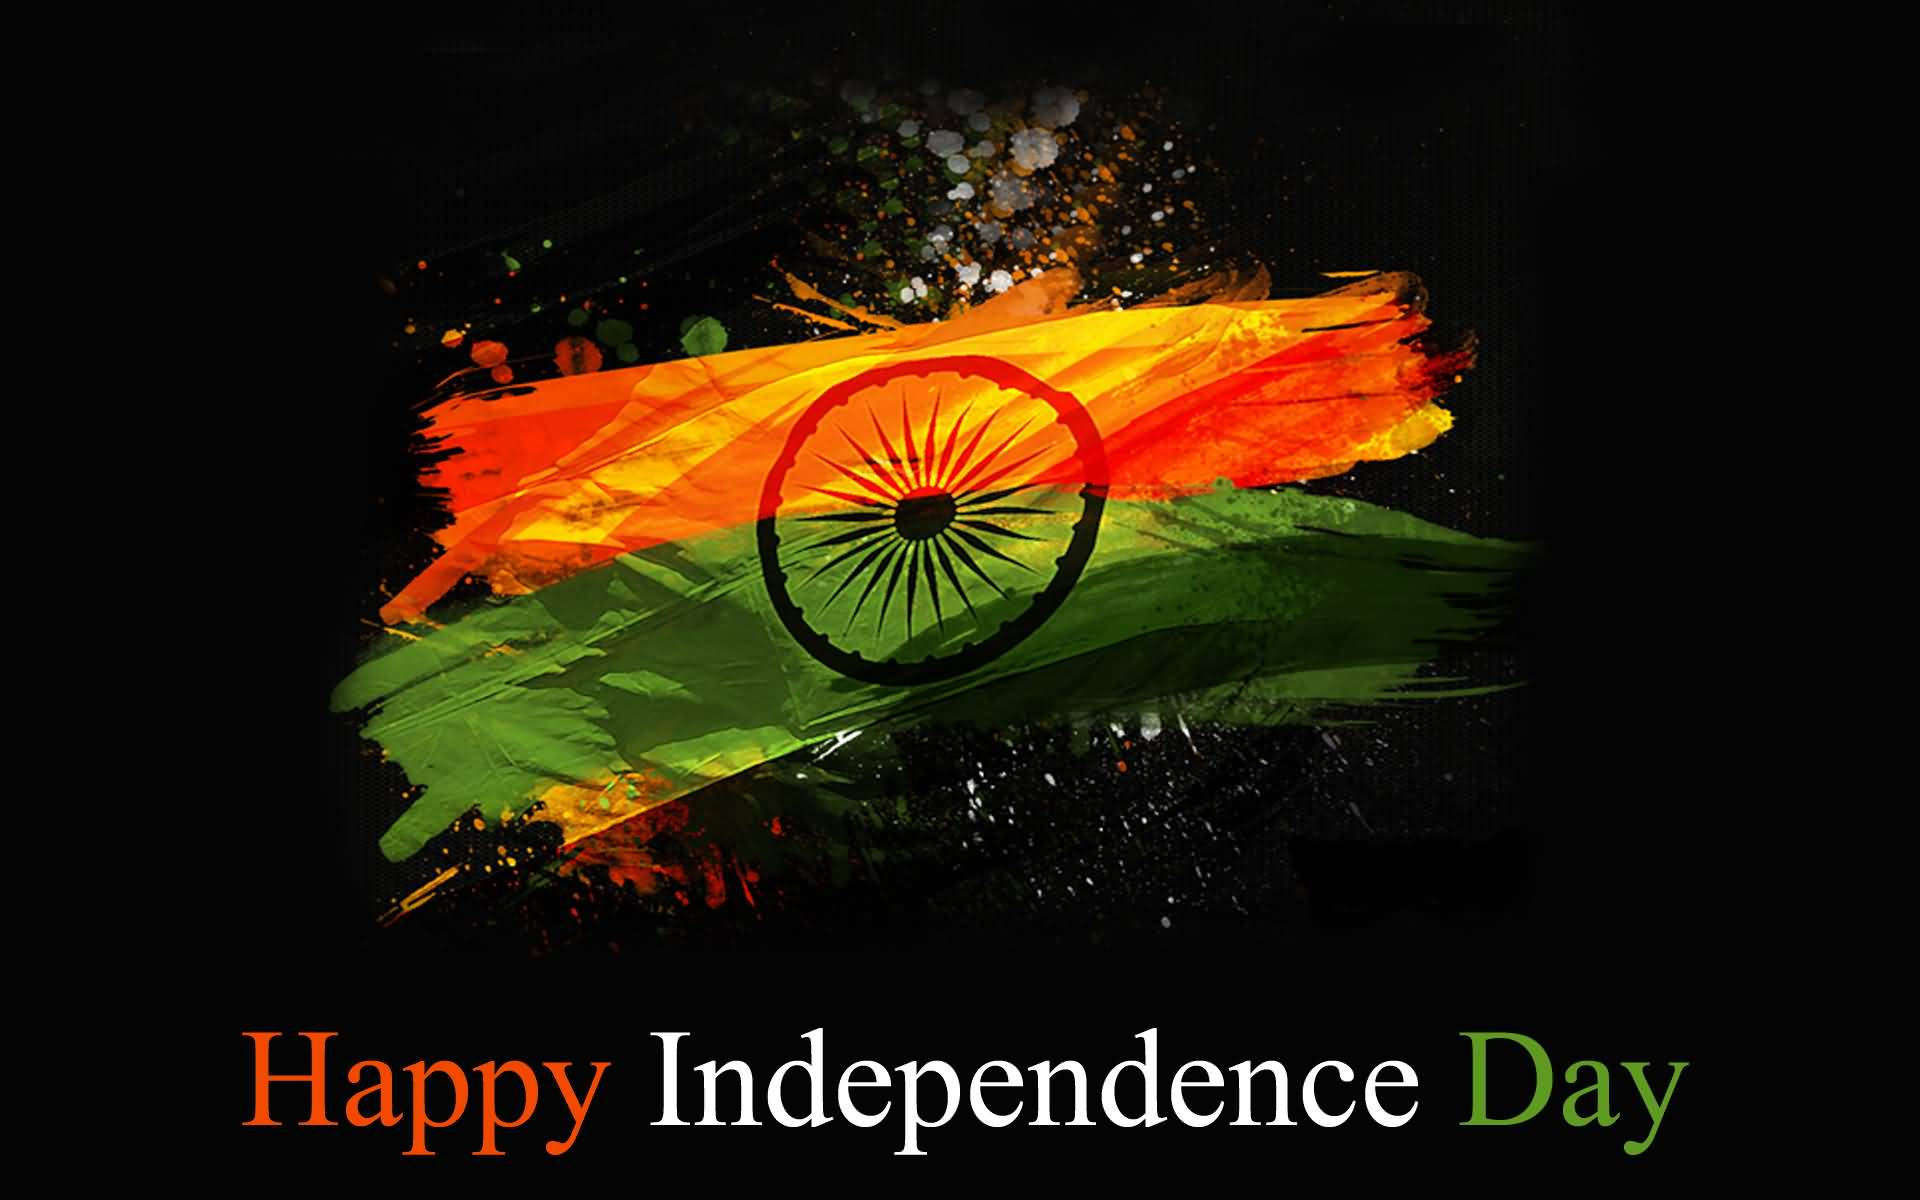 Happy Independence Day Indian Flag Wallpaper